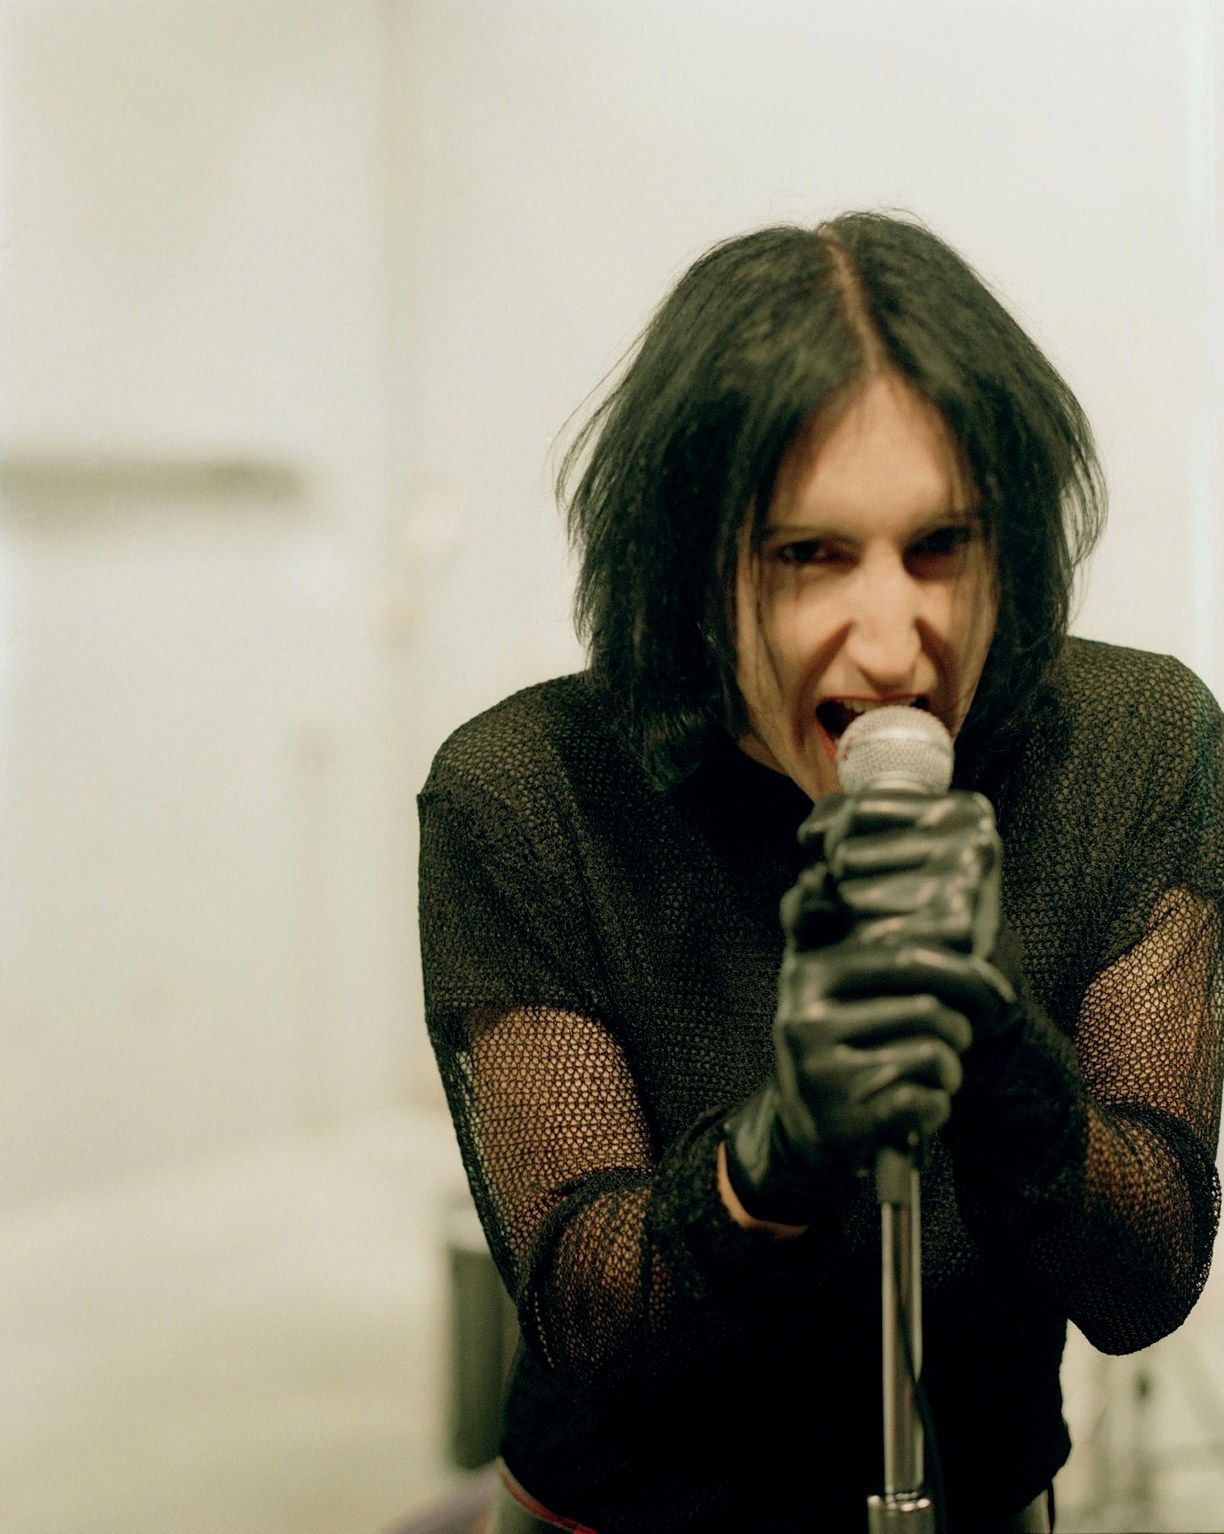 Trent Reznor March Of The Pigs Video Shoot | NIN | Pinterest | Trent ...